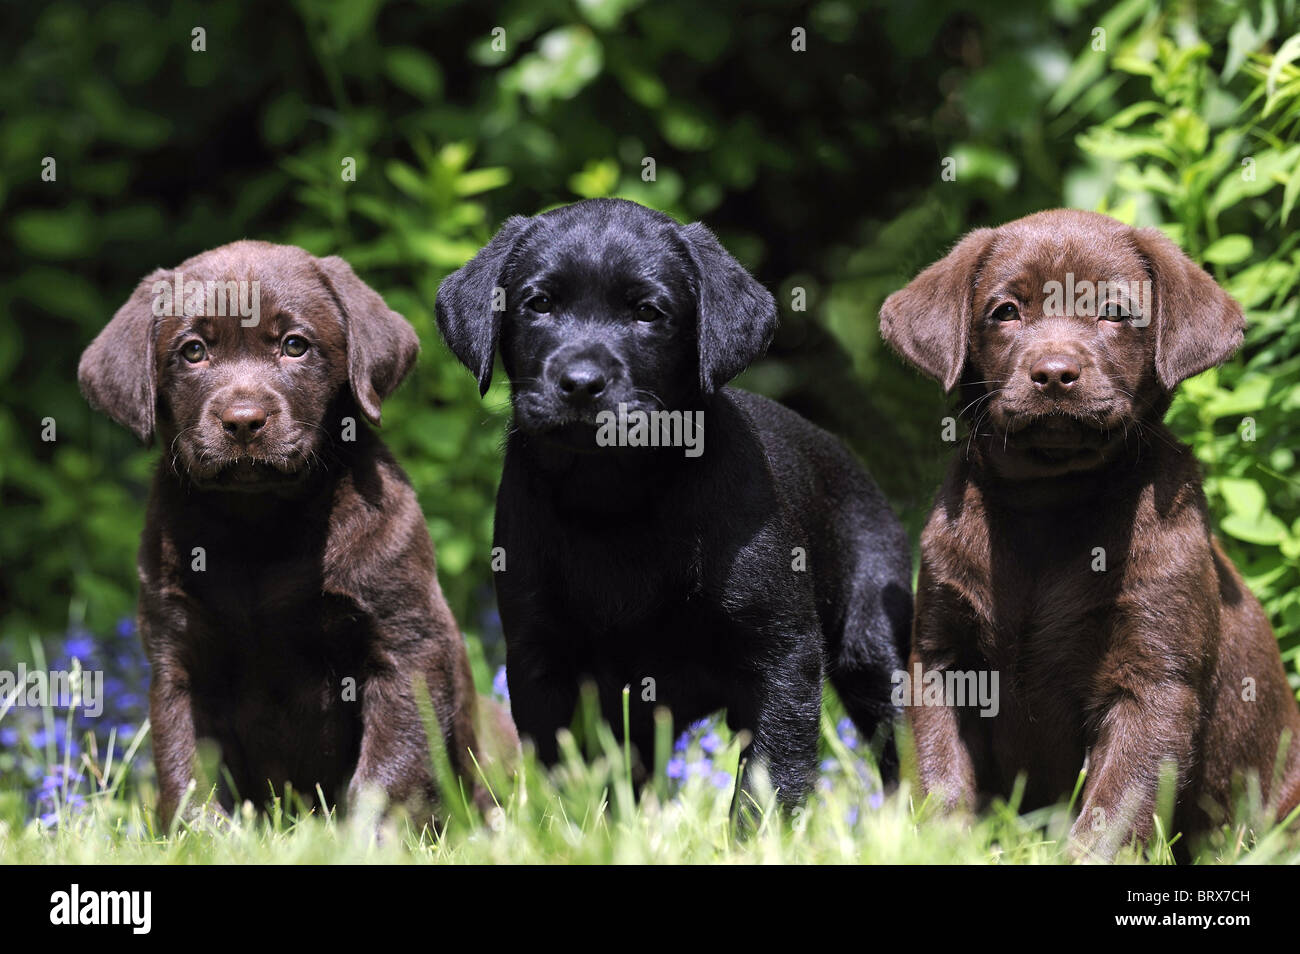 Labrador Retriever, Chocolate Labrador (Canis lupus familiaris), two brown and a black puppy sitting in a garden. - Stock Image